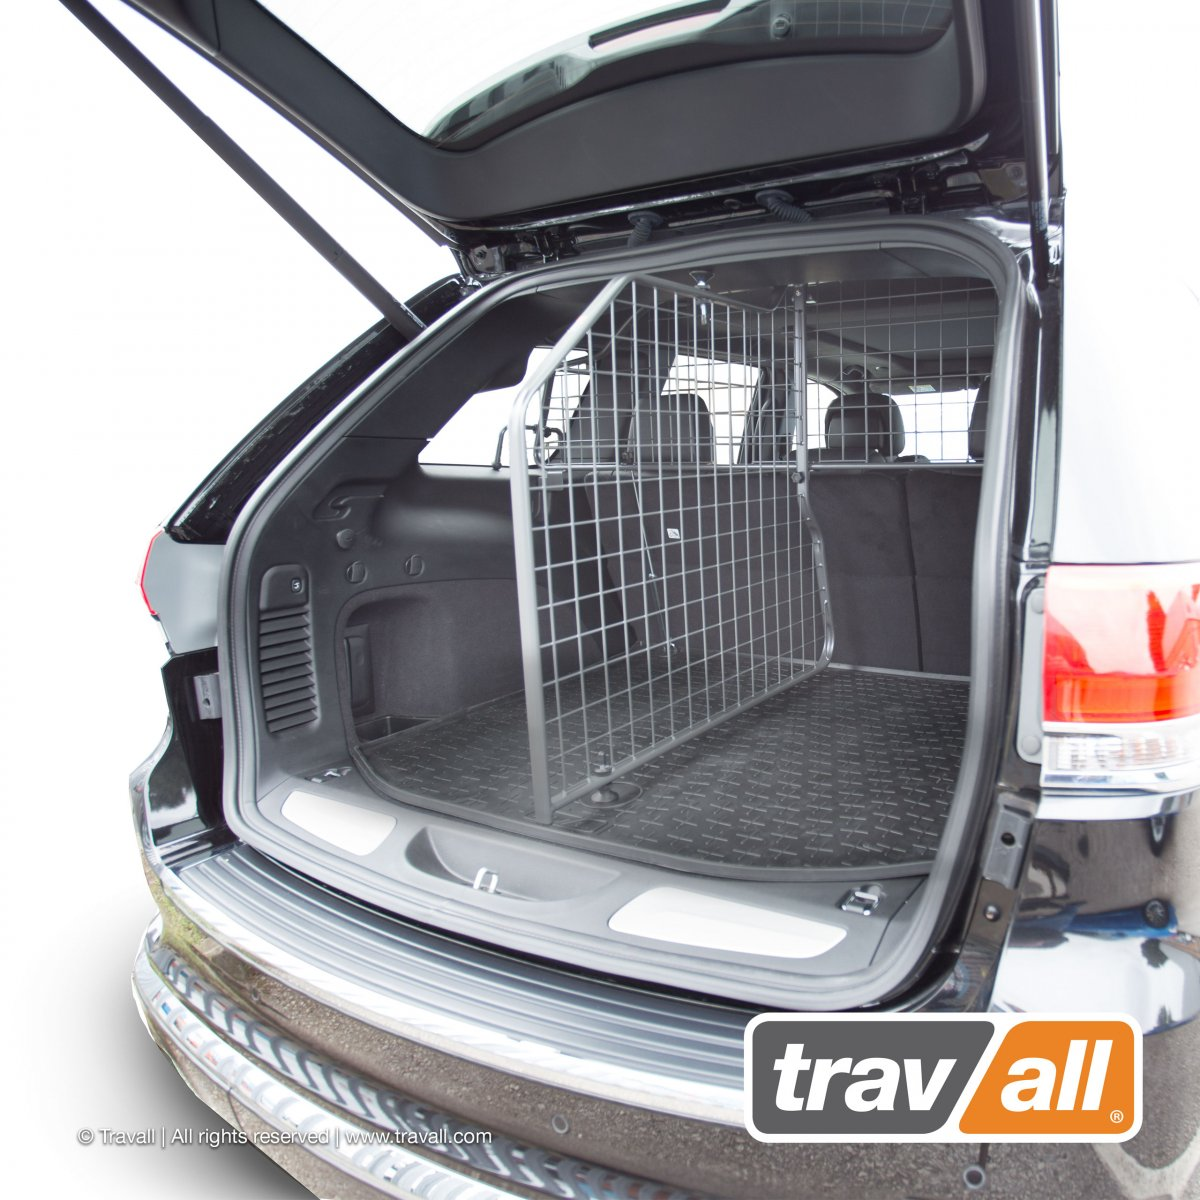 Travall® DIVIDER for Jeep Grand Cherokee (2010 >) / SRT (2011 >)